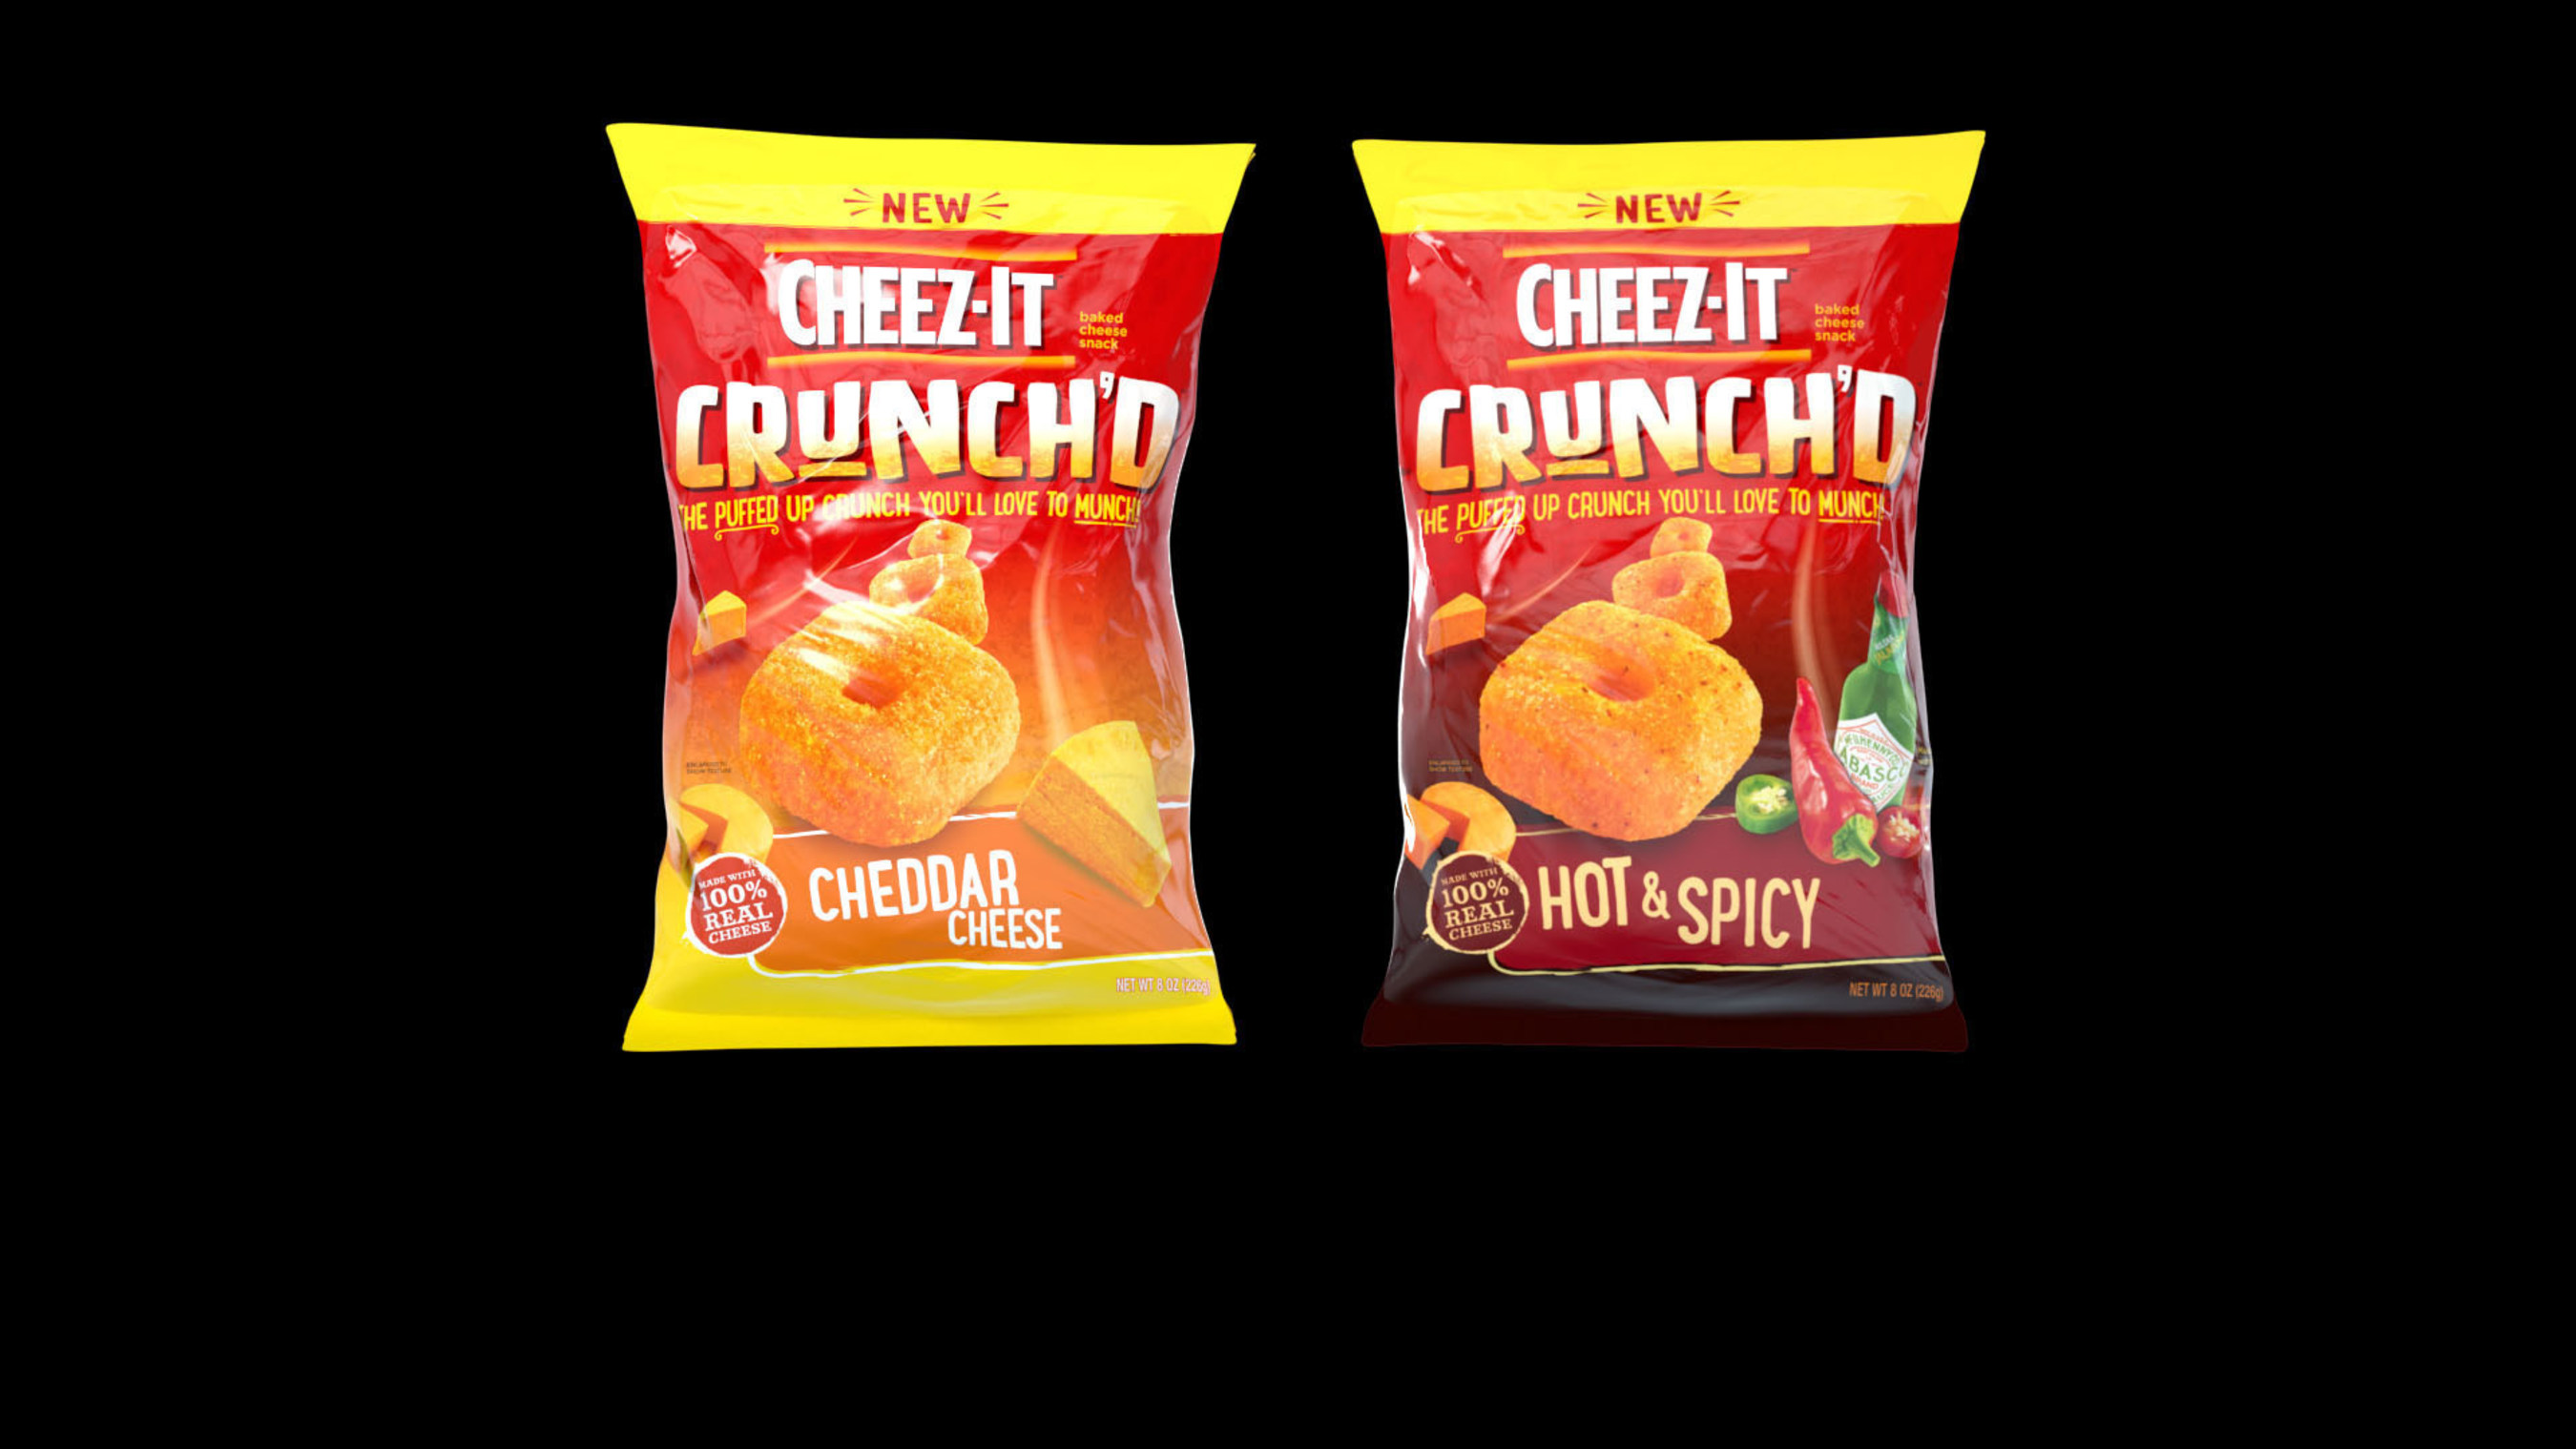 Cheez-It is making its first ever appearance in the chip aisle by introducing Cheez-It Crunch'd, its first ever cheesy puff. Crunch'd is offered in two wickedly delicious flavors, including Cheddar Cheese and Hot & Spicy.